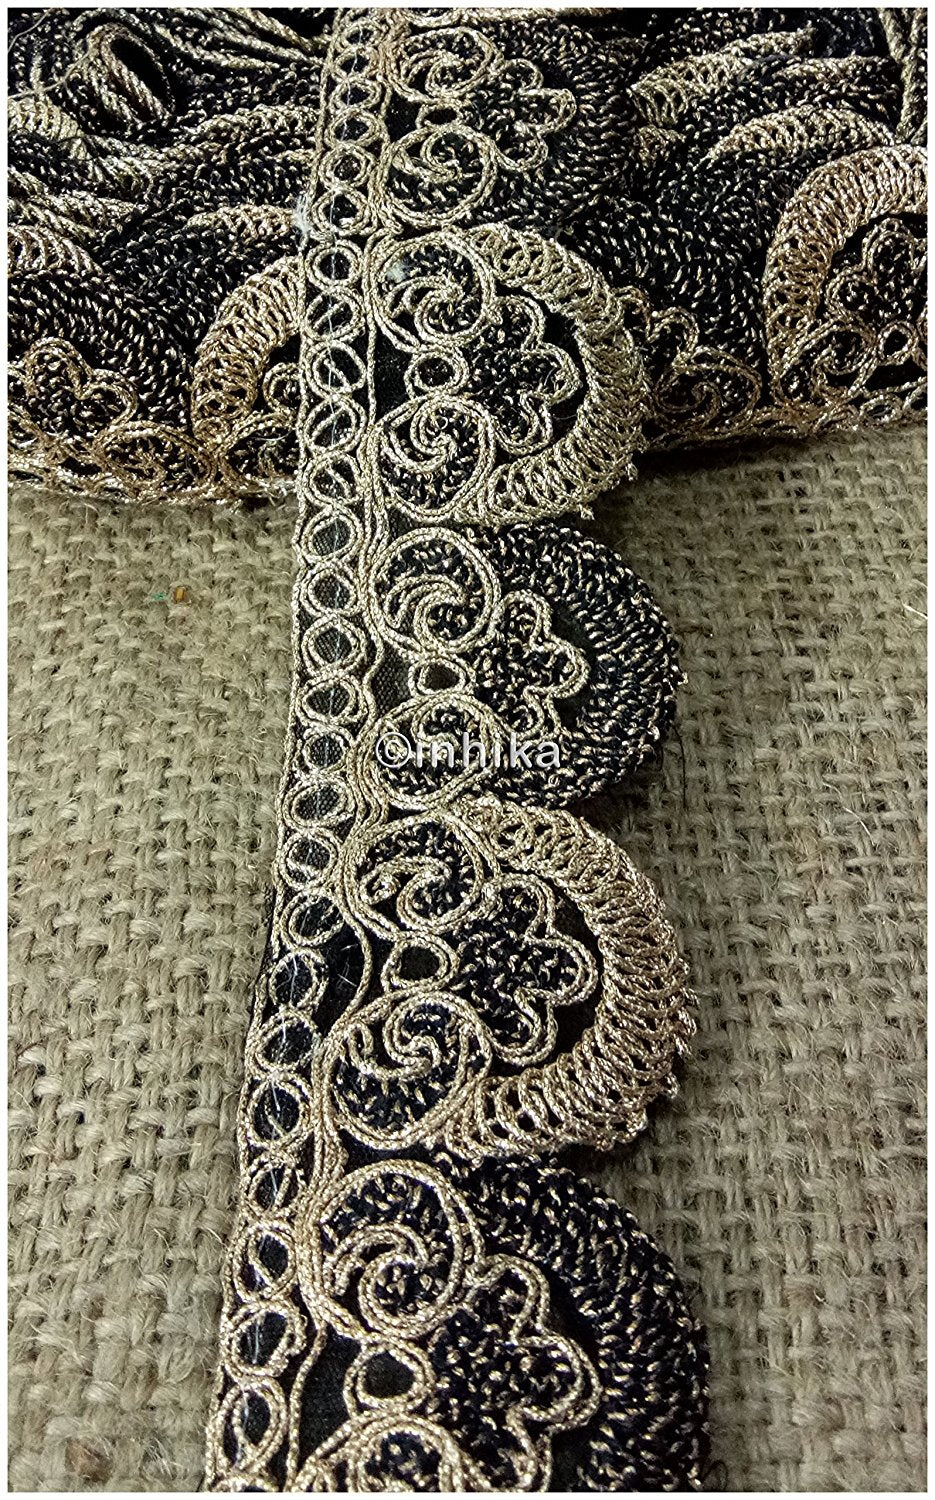 lace trim fabric bridal rhinestone lace appliques wholesale Black-Embroidery-2-Inch-Wide-3257